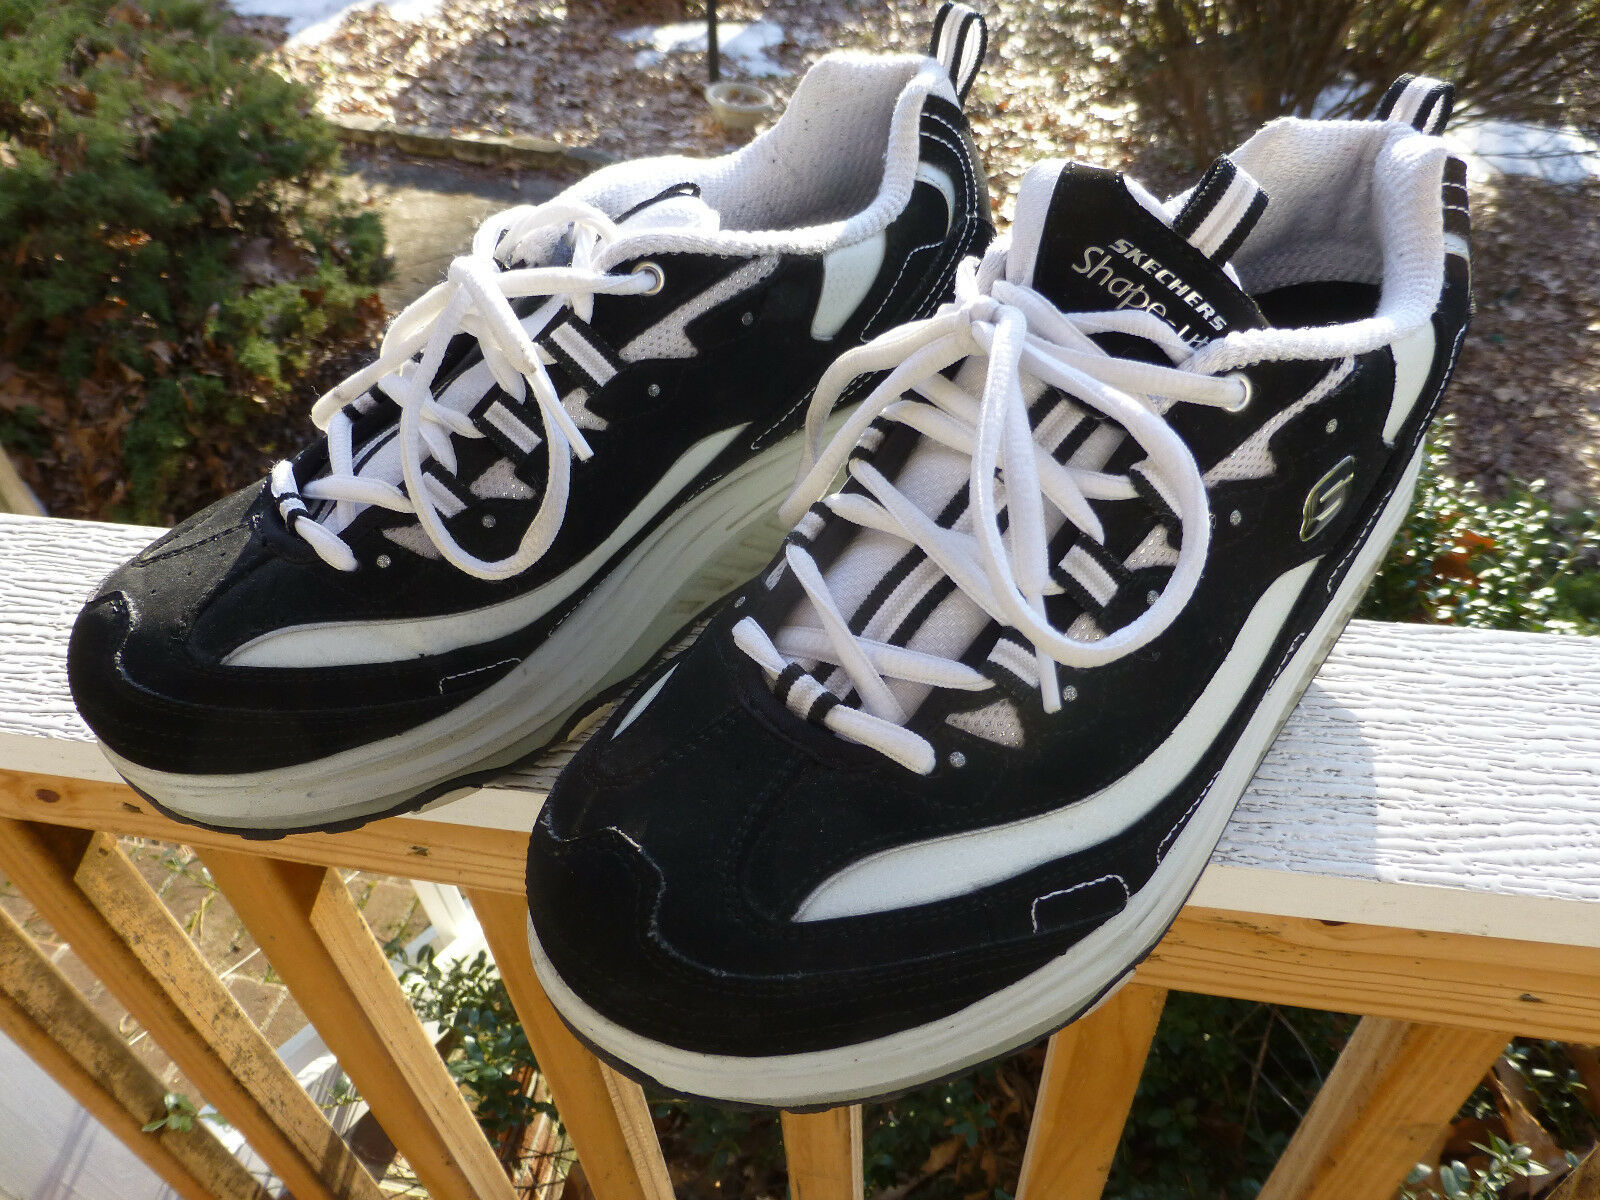 11809 Skechers Shape-ups Womens Size 10 Sneakers Black & White Great Condition